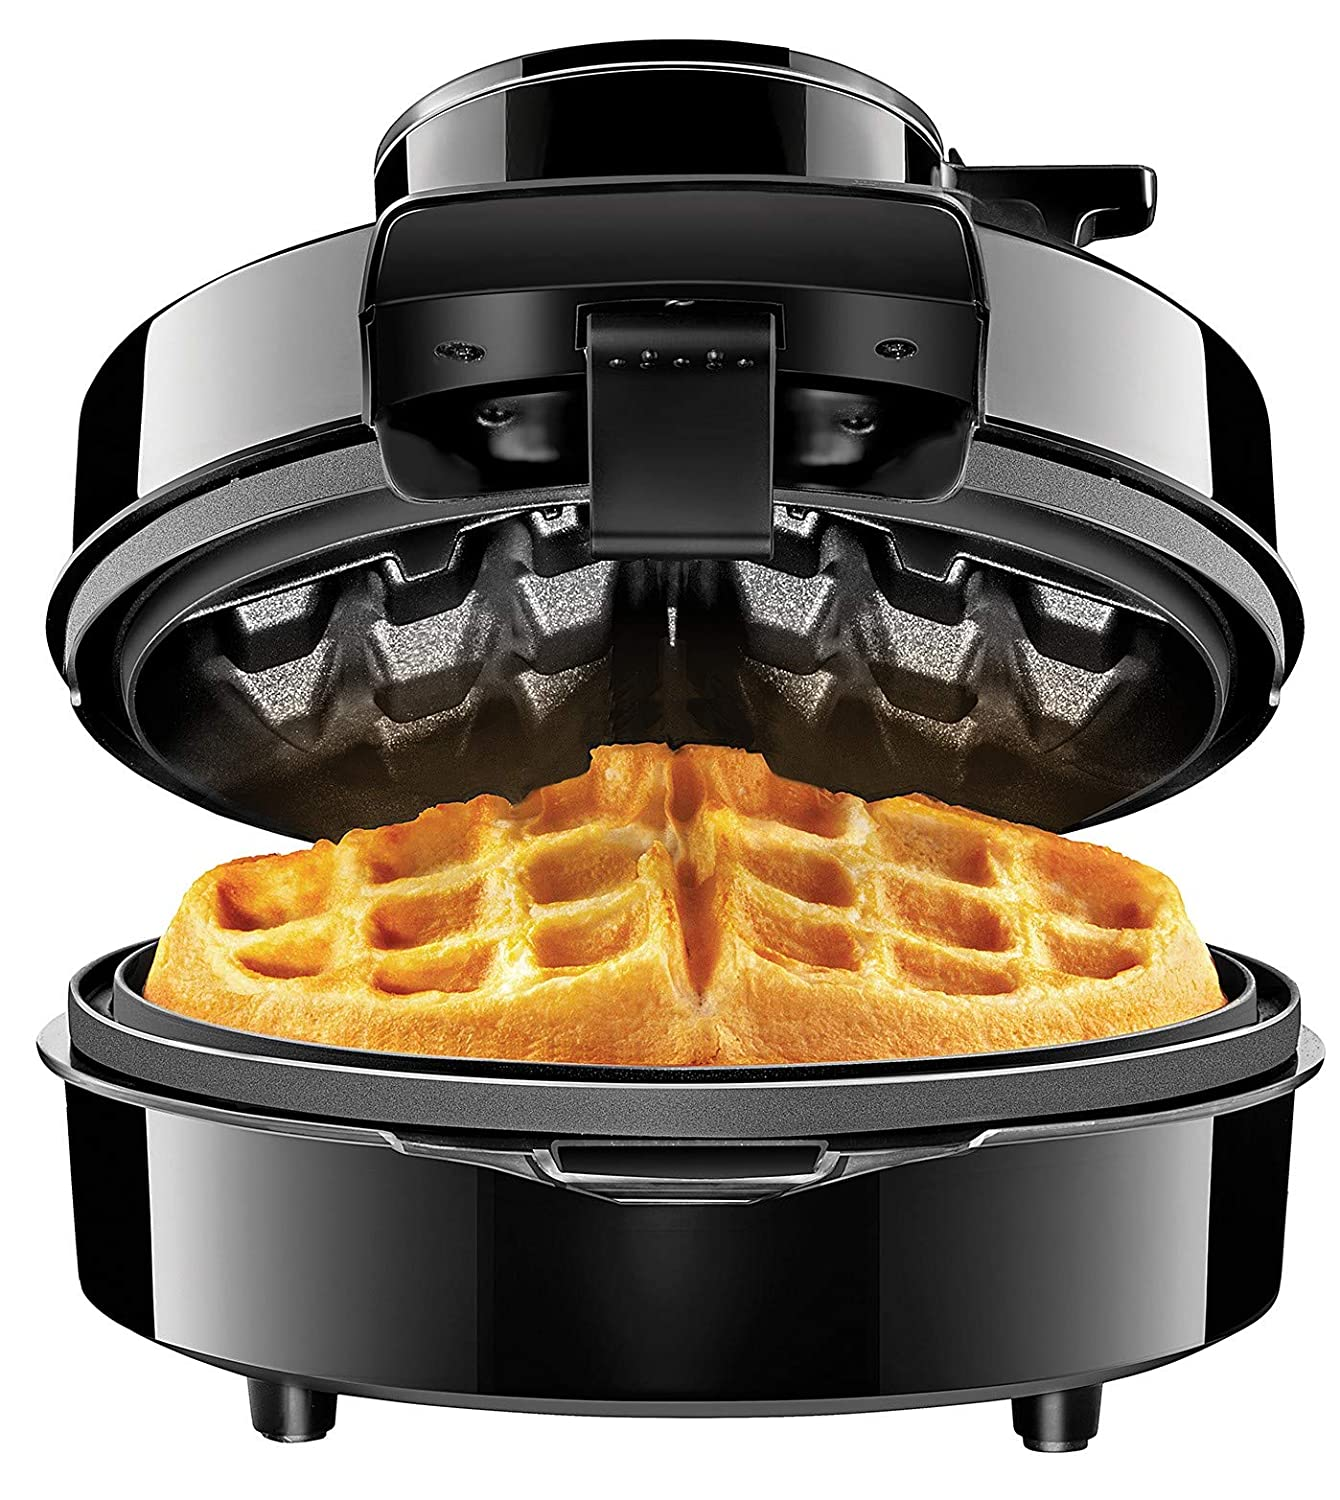 NEW & IMPROVED Chefman Perfect Pour Volcano Belgian Waffle Maker, No Overflow Design, Round Waffle Iron, Mess & Stress Free, Best Small Appliance Innovation Award Winner, Measuring Cup, Pour Spout & Cleaning Tool Included